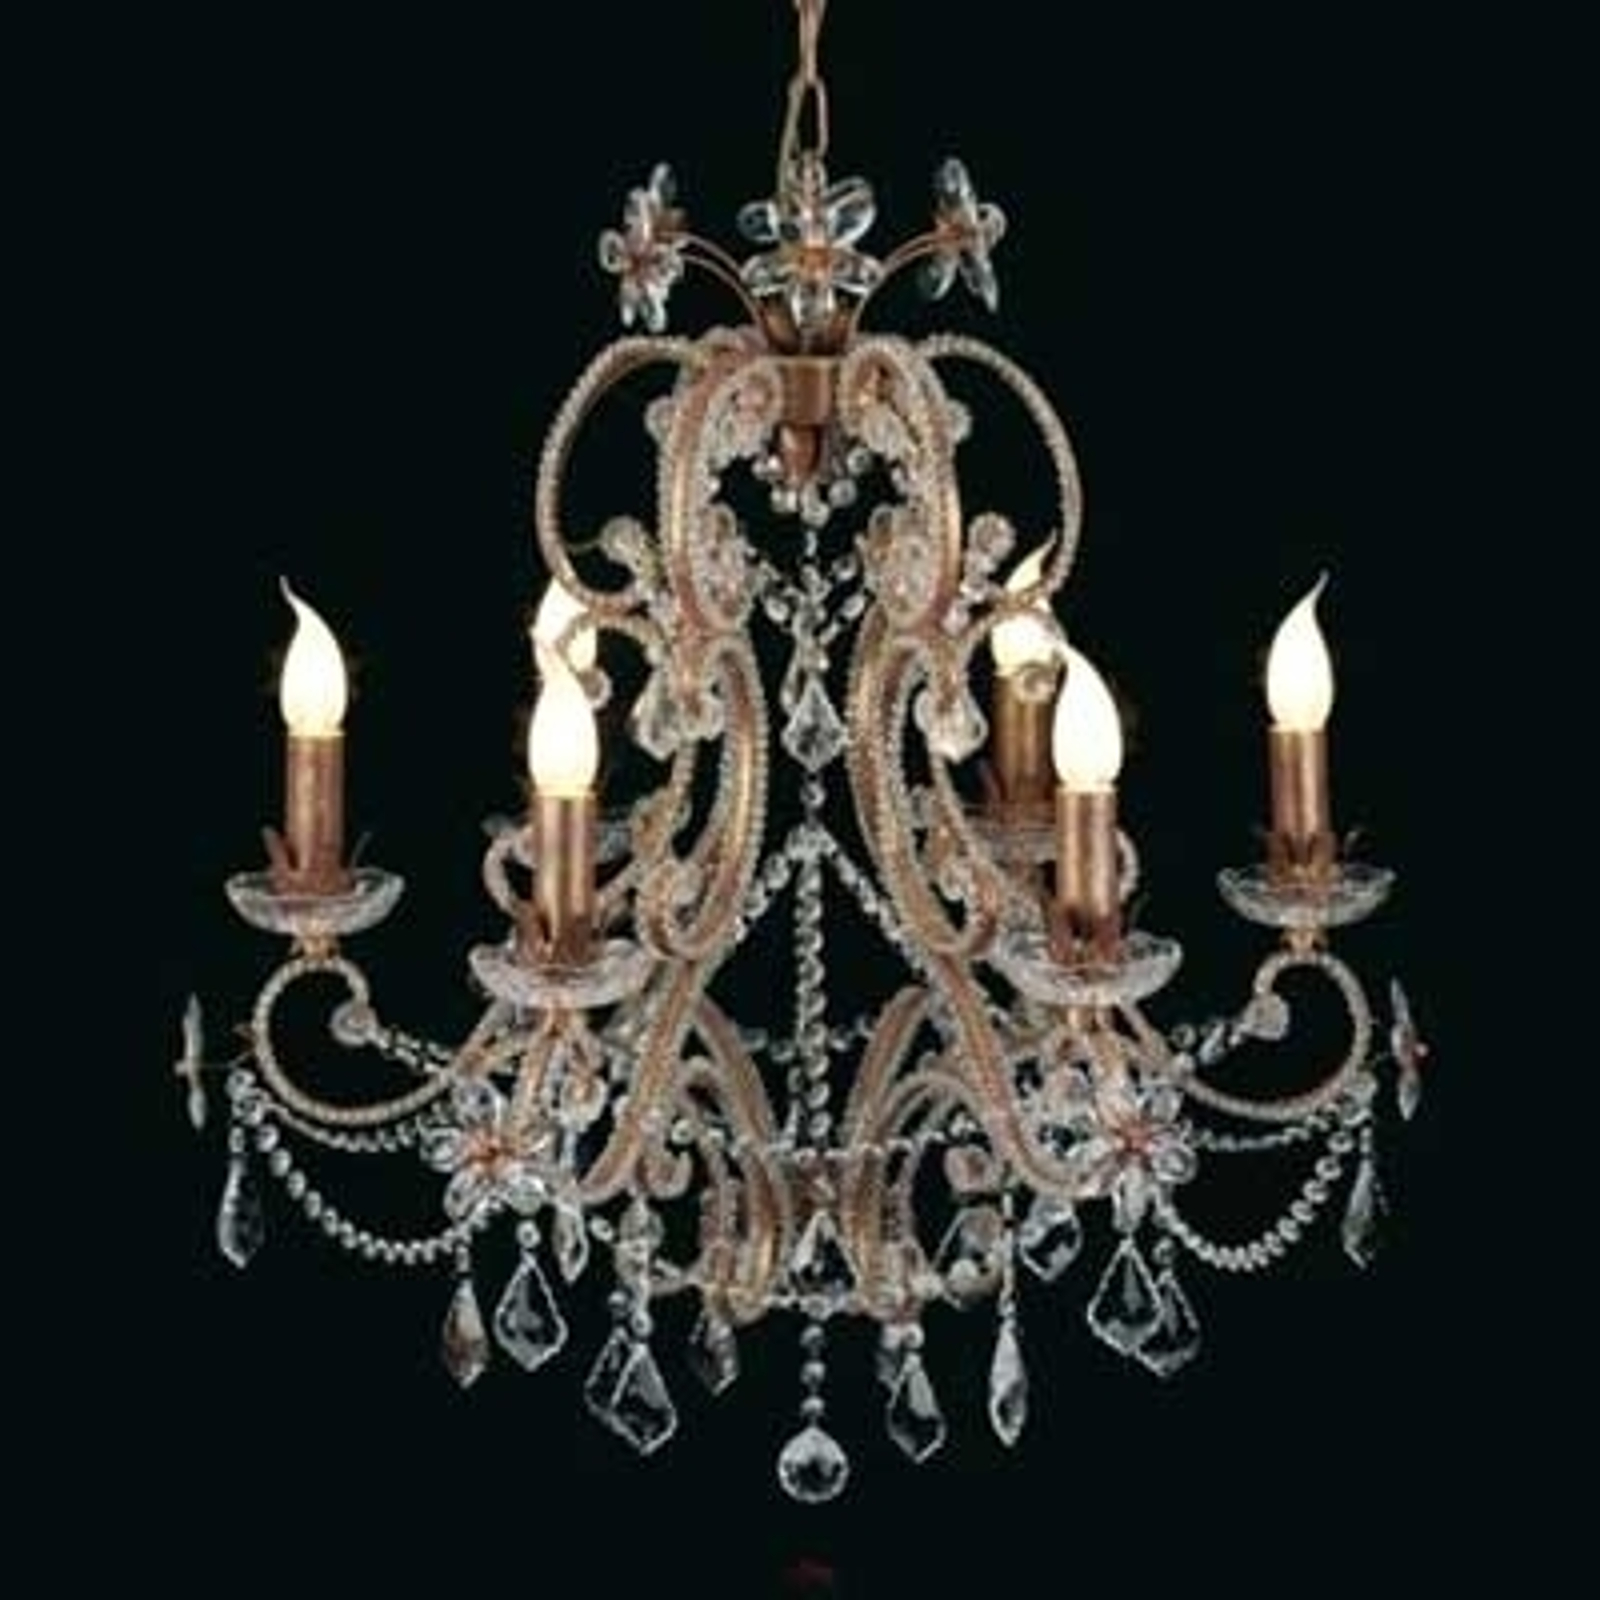 BENETTA - chandelier, rich in details_1032222_1